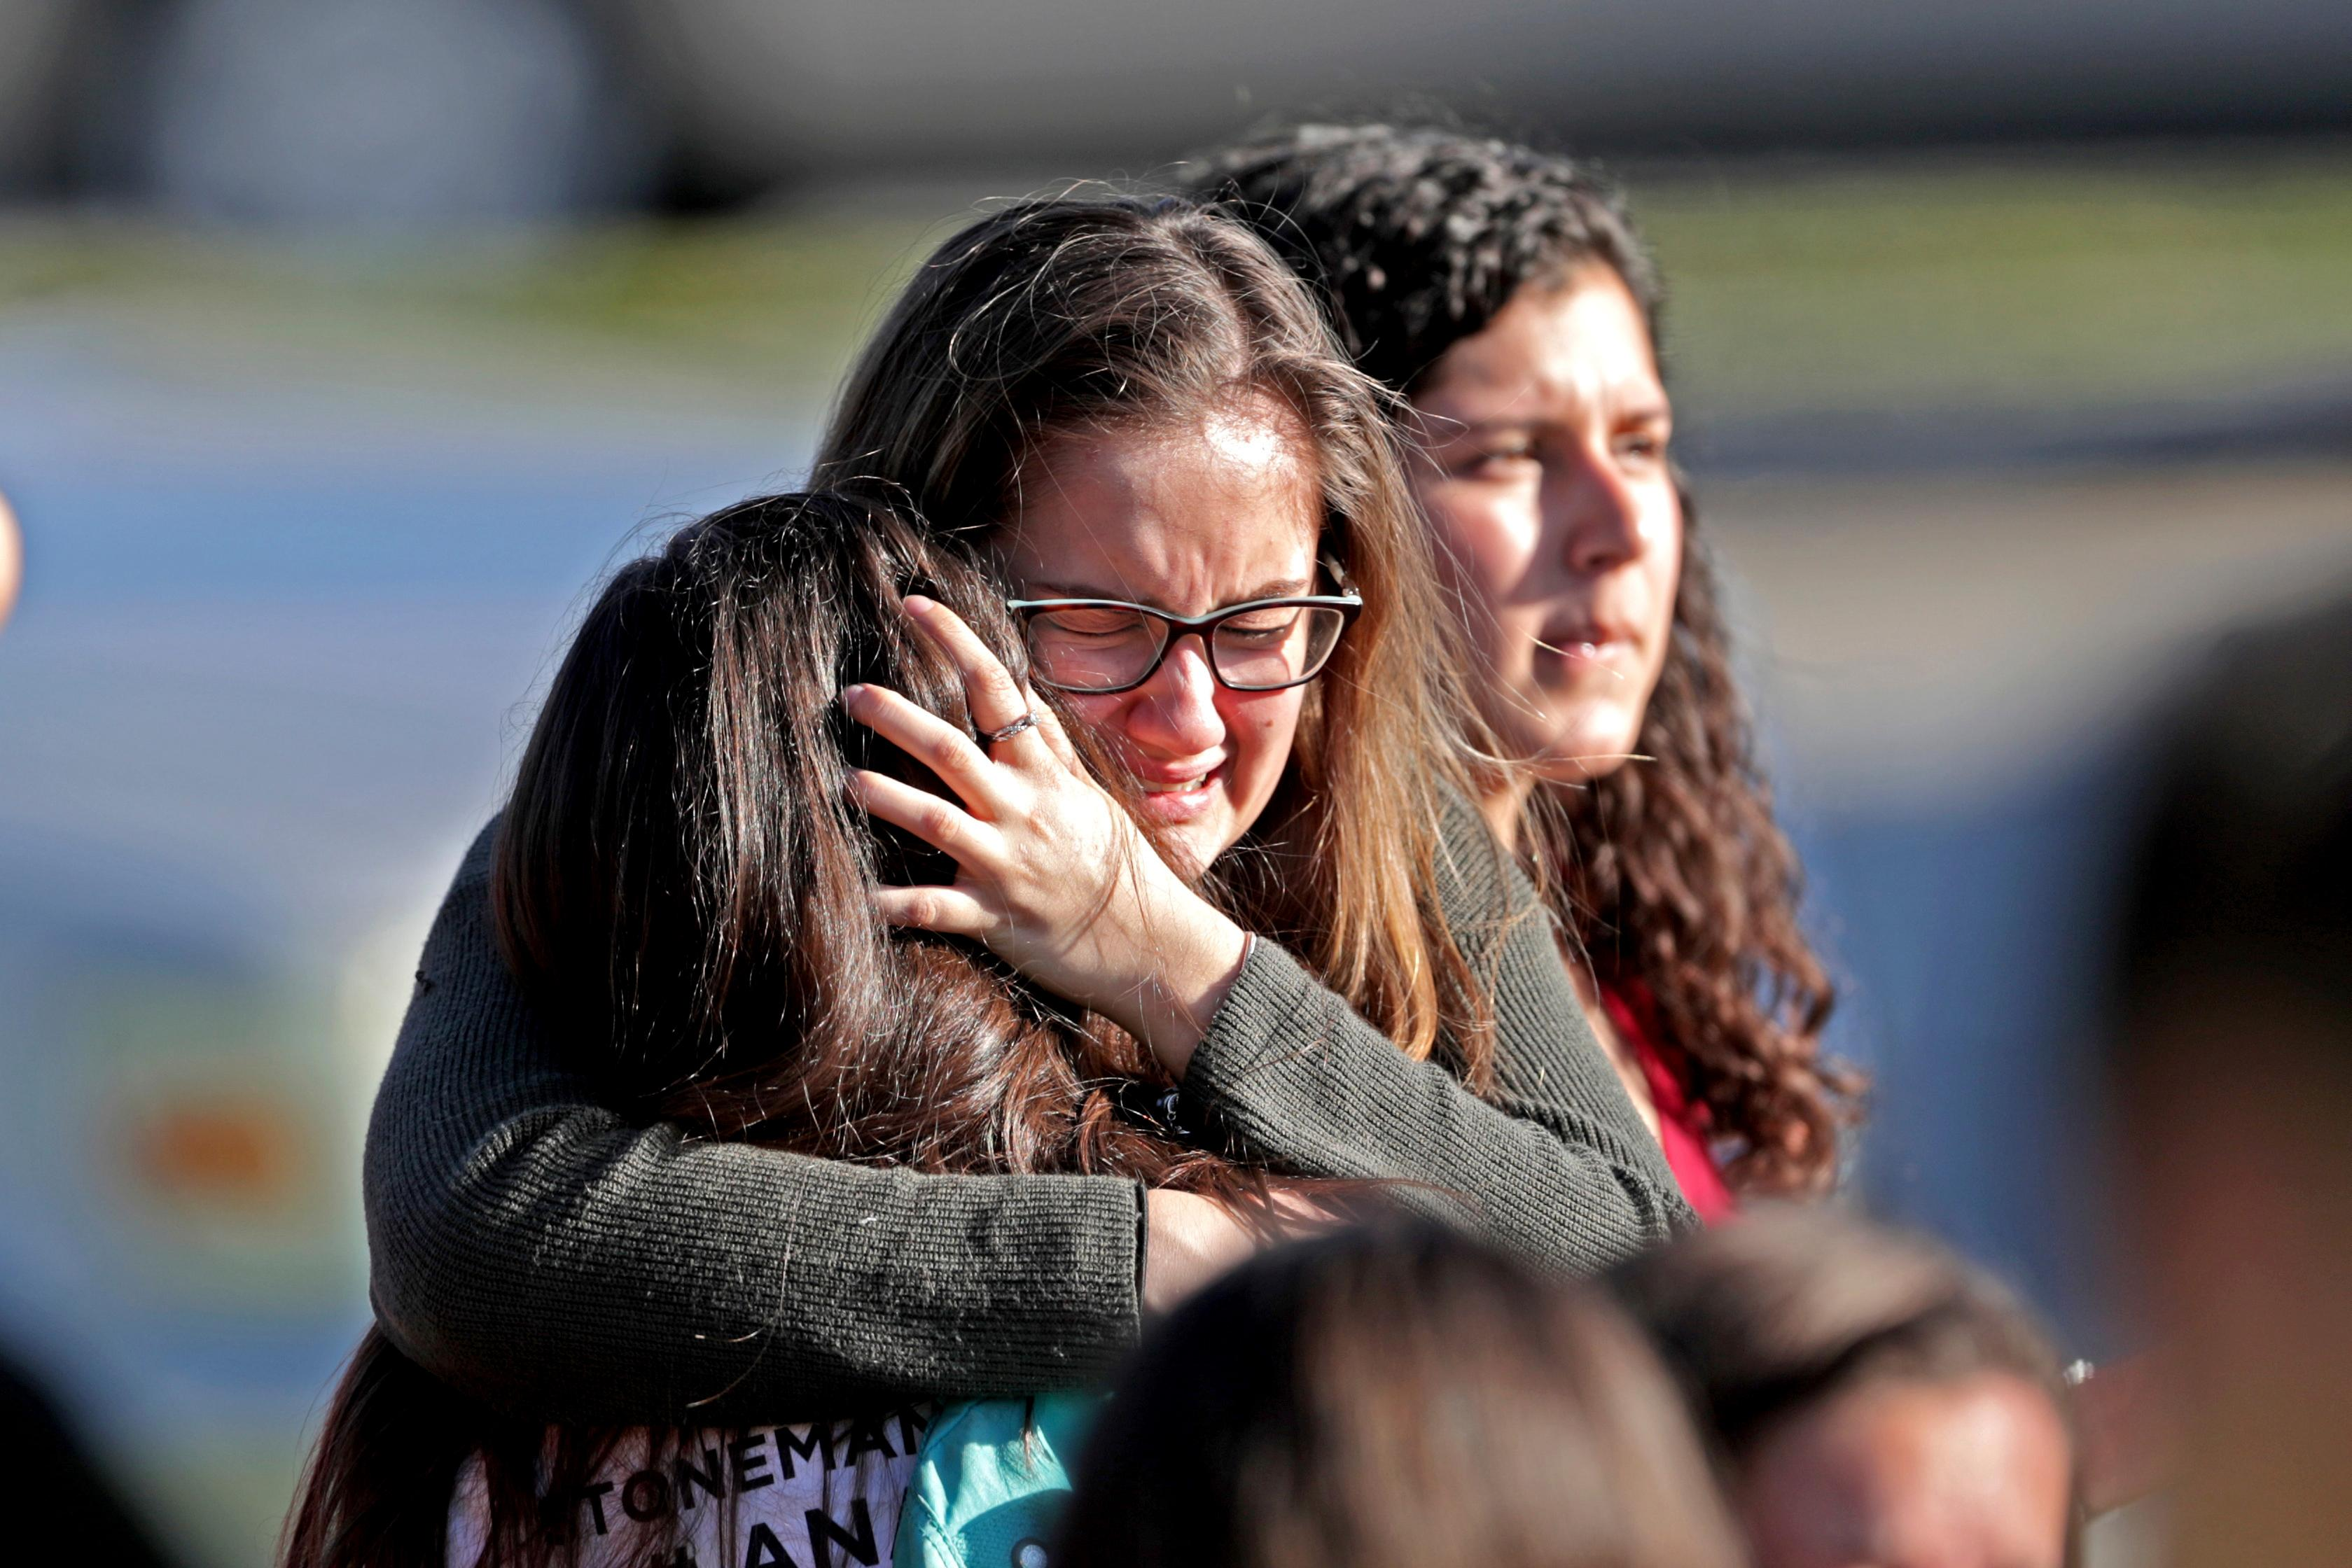 FILE - In this Wednesday, Feb. 14, 2018 file photo, students released from a lockdown embrace following a shooting at Marjory Stoneman Douglas High School in Parkland, Fla. A week after a shooter slaughtered more than a dozen people in the Florida high school, thousands of protesters, including many angry teenagers, swarmed into the state Capitol on Wednesday, Feb. 21, calling for changes to gun laws, a ban on assault-type weapons and improved care for the mentally ill. (John McCall/South Florida Sun-Sentinel via AP, File)